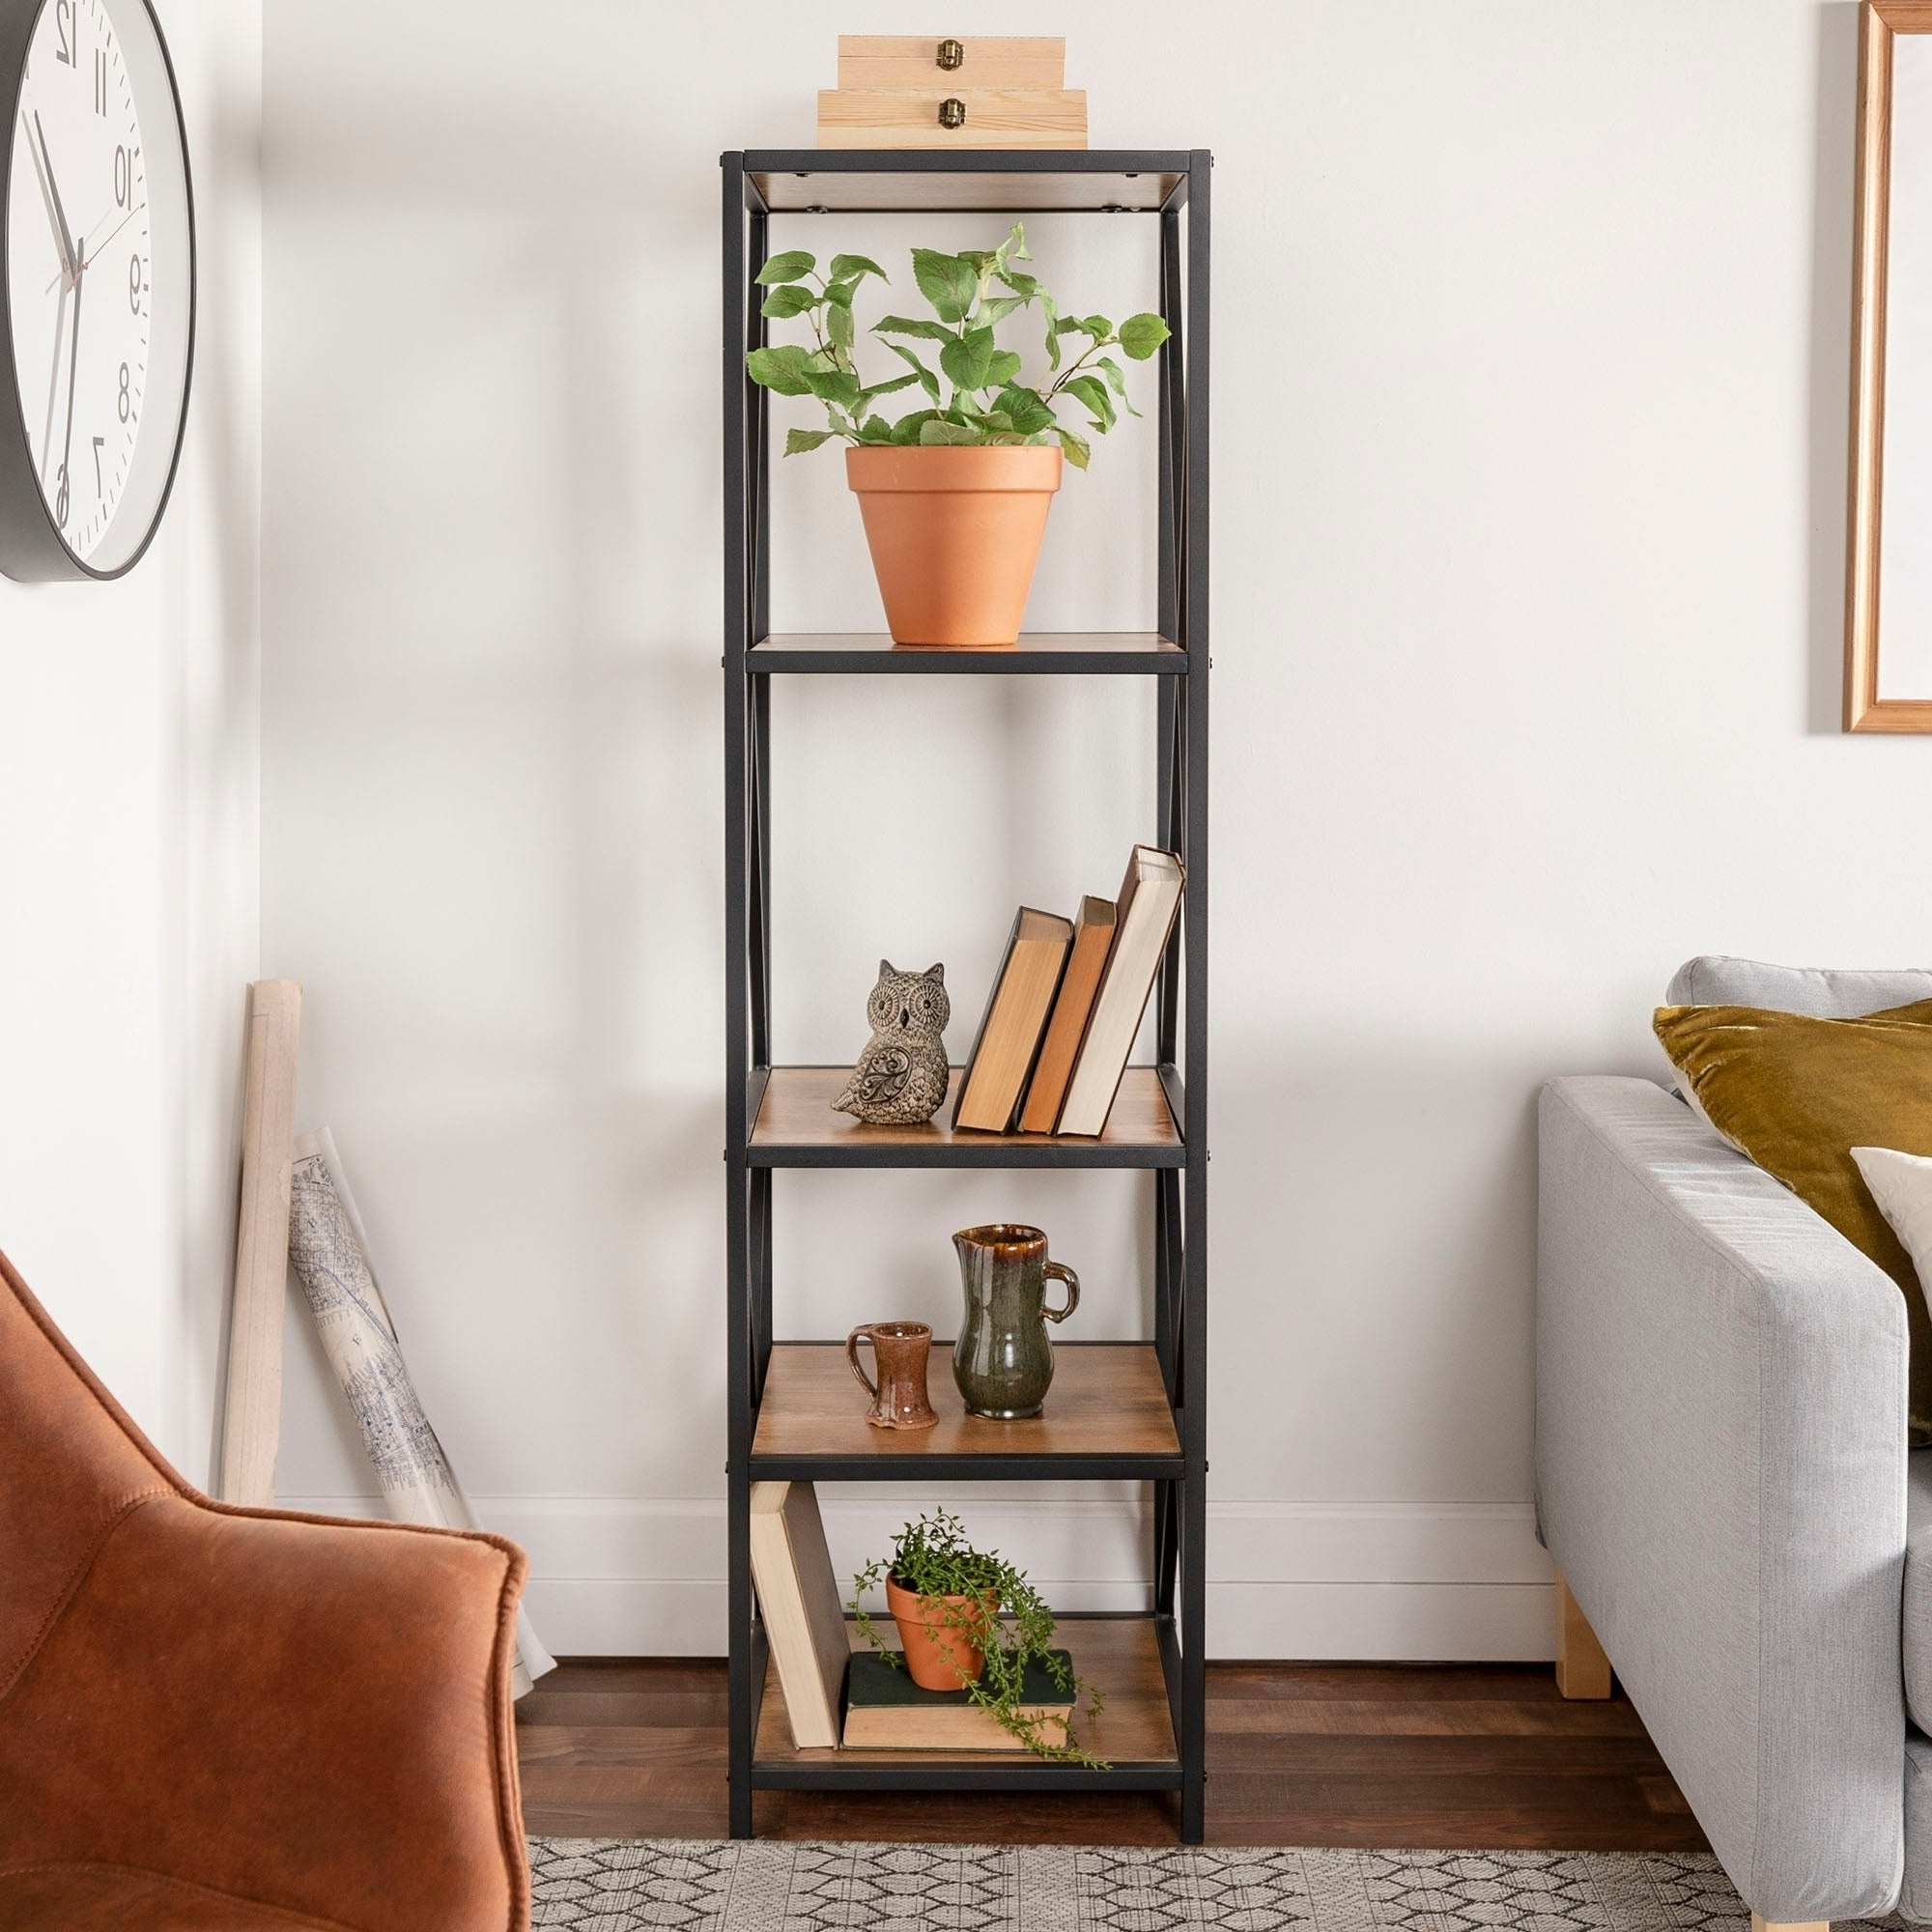 Fashionable Carbon Loft Hattie Metal And Wood X Frame Media Bookshelf – 18 X 16 X 61h Throughout Hattie Corner Bookcases (View 5 of 20)